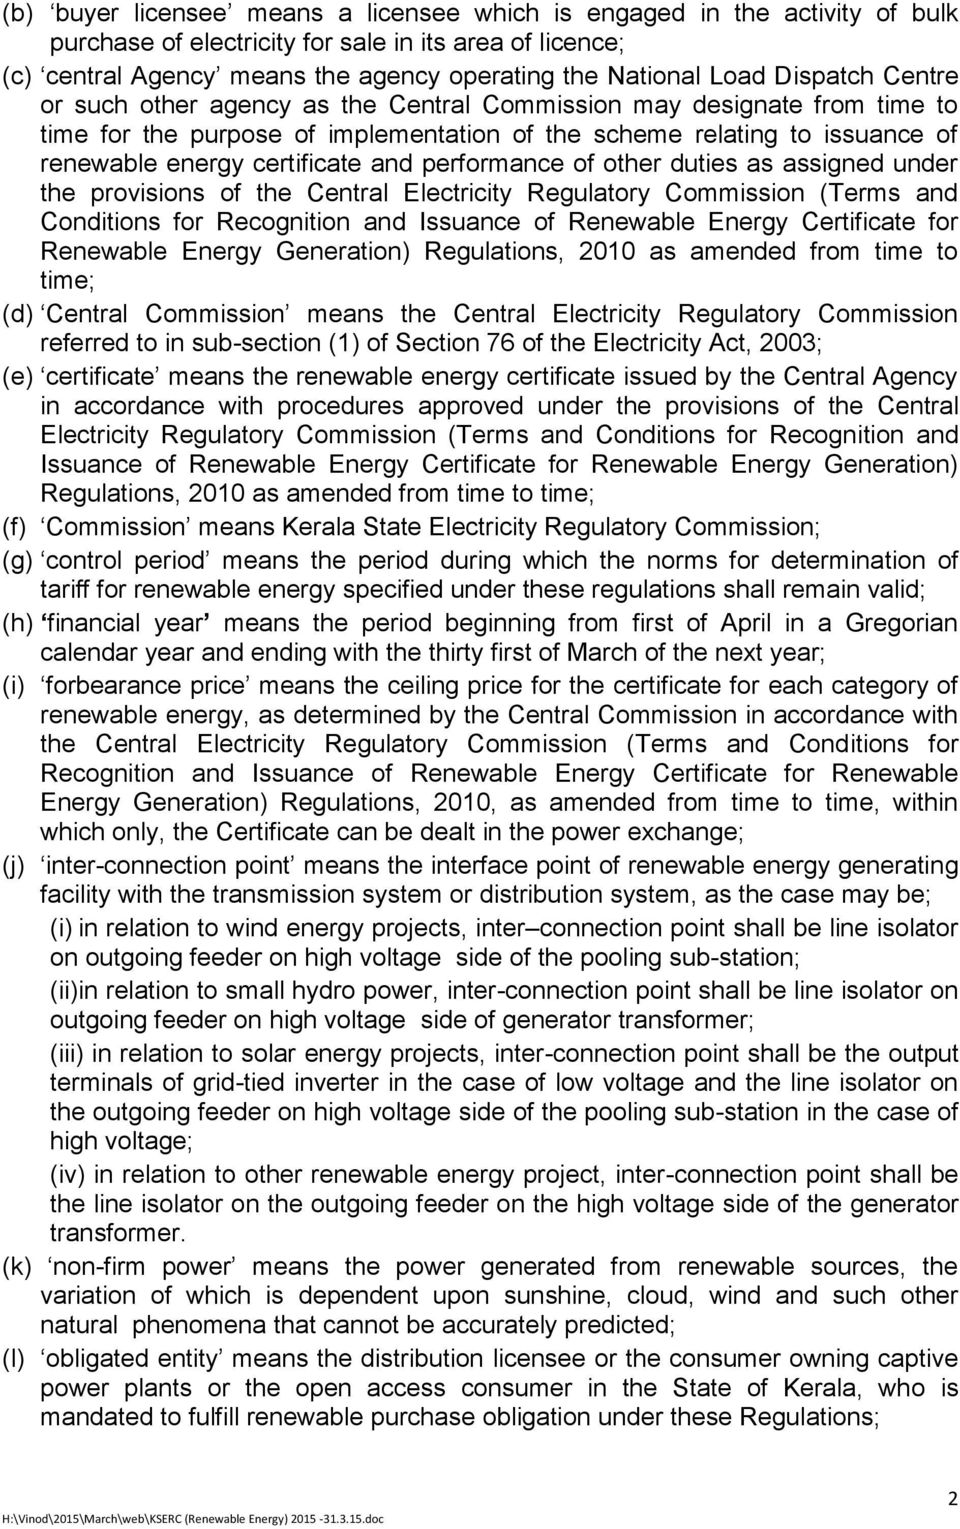 performance of other duties as assigned under the provisions of the Central Electricity Regulatory Commission (Terms and Conditions for Recognition and Issuance of Renewable Energy Certificate for